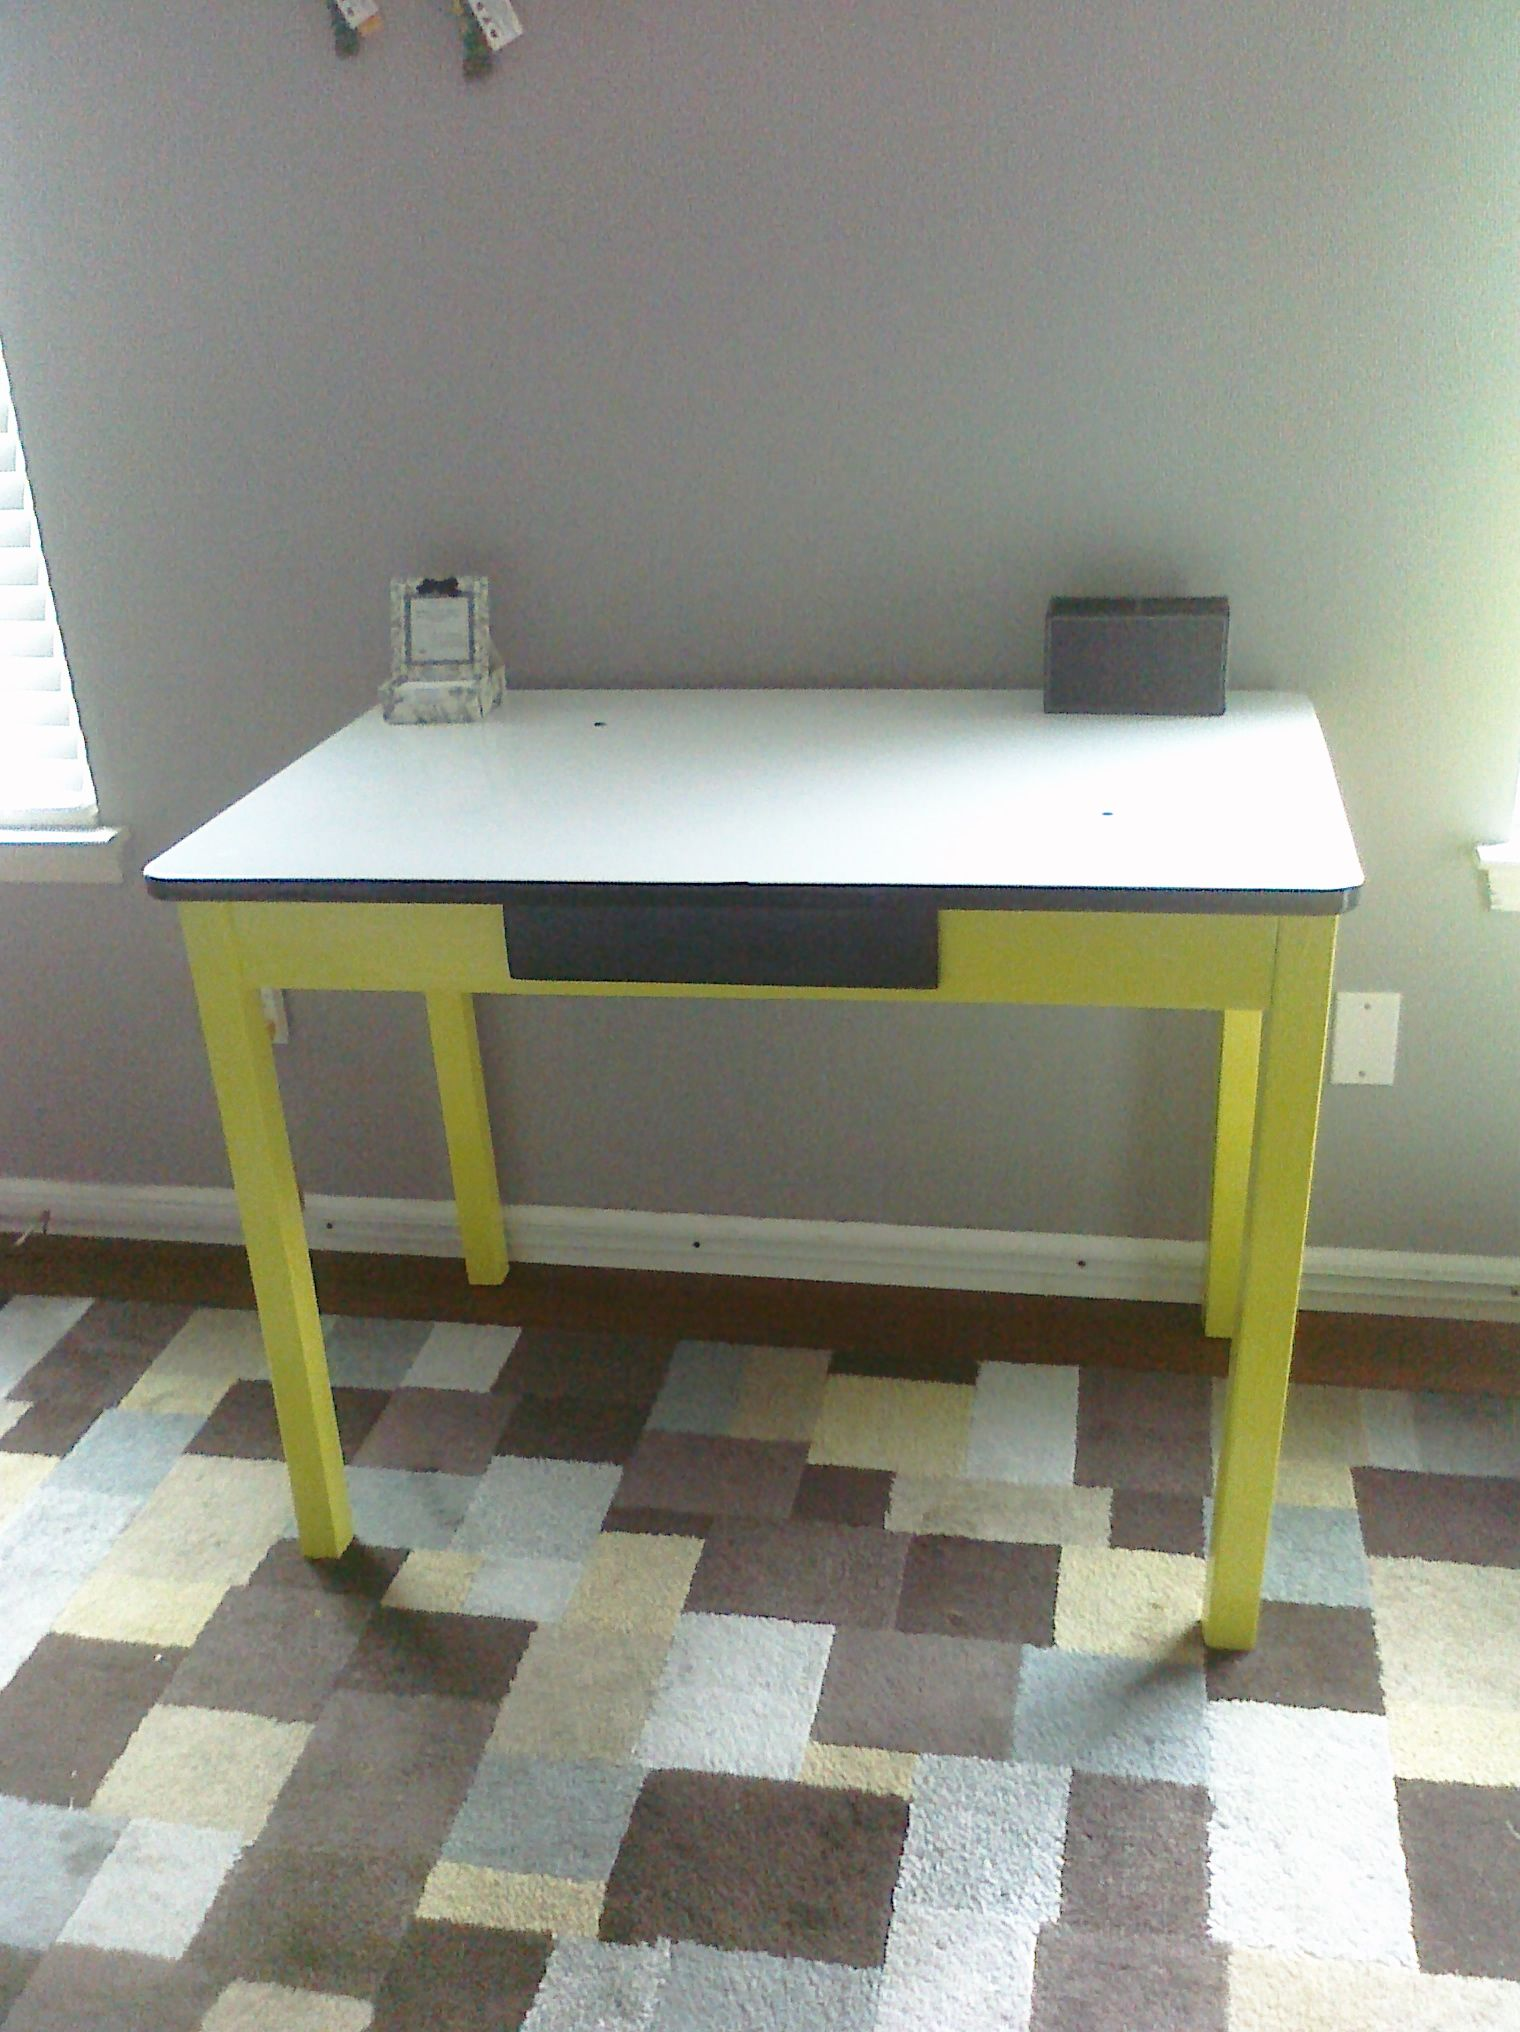 antique kitchen table w  white enamel metal top refinished and painted chartreuse  i added antique kitchen table w  white enamel metal top refinished and      rh   pinterest com